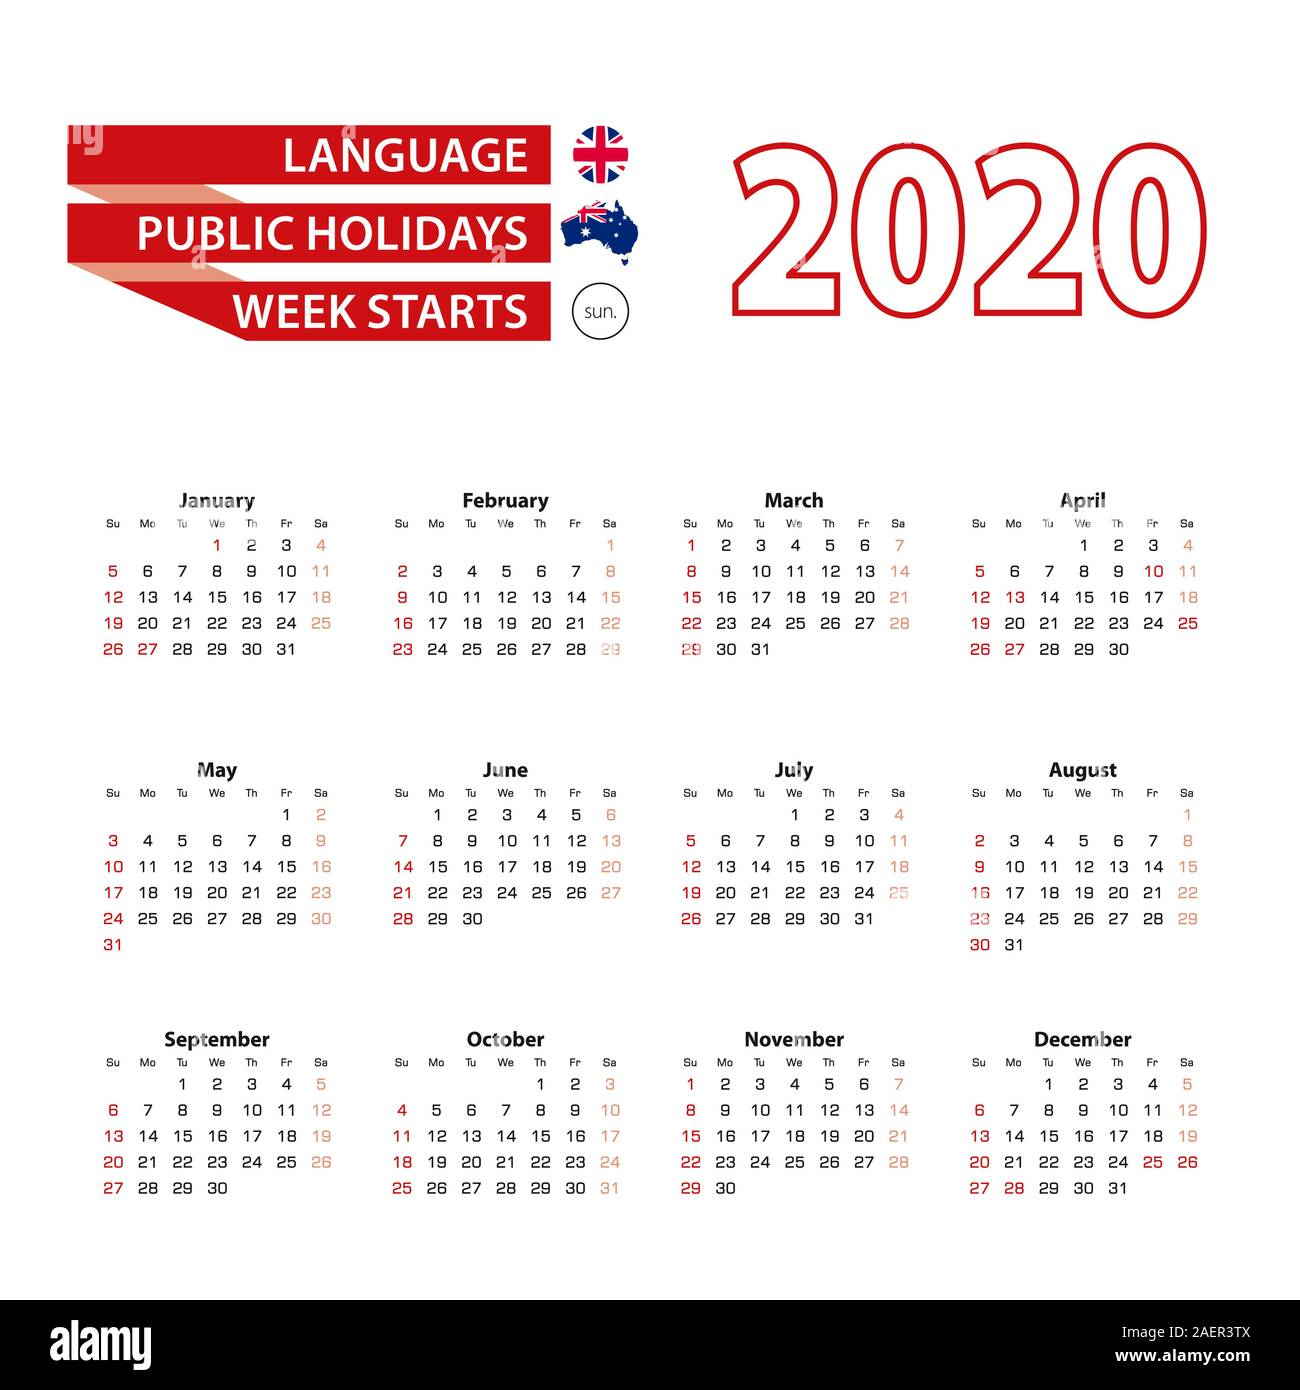 Calendar 2020 In English Language With Public Holidays The Country Of Australia In Year 2020 Week Starts From Sunday Vector Illustration Stock Vector Image Art Alamy